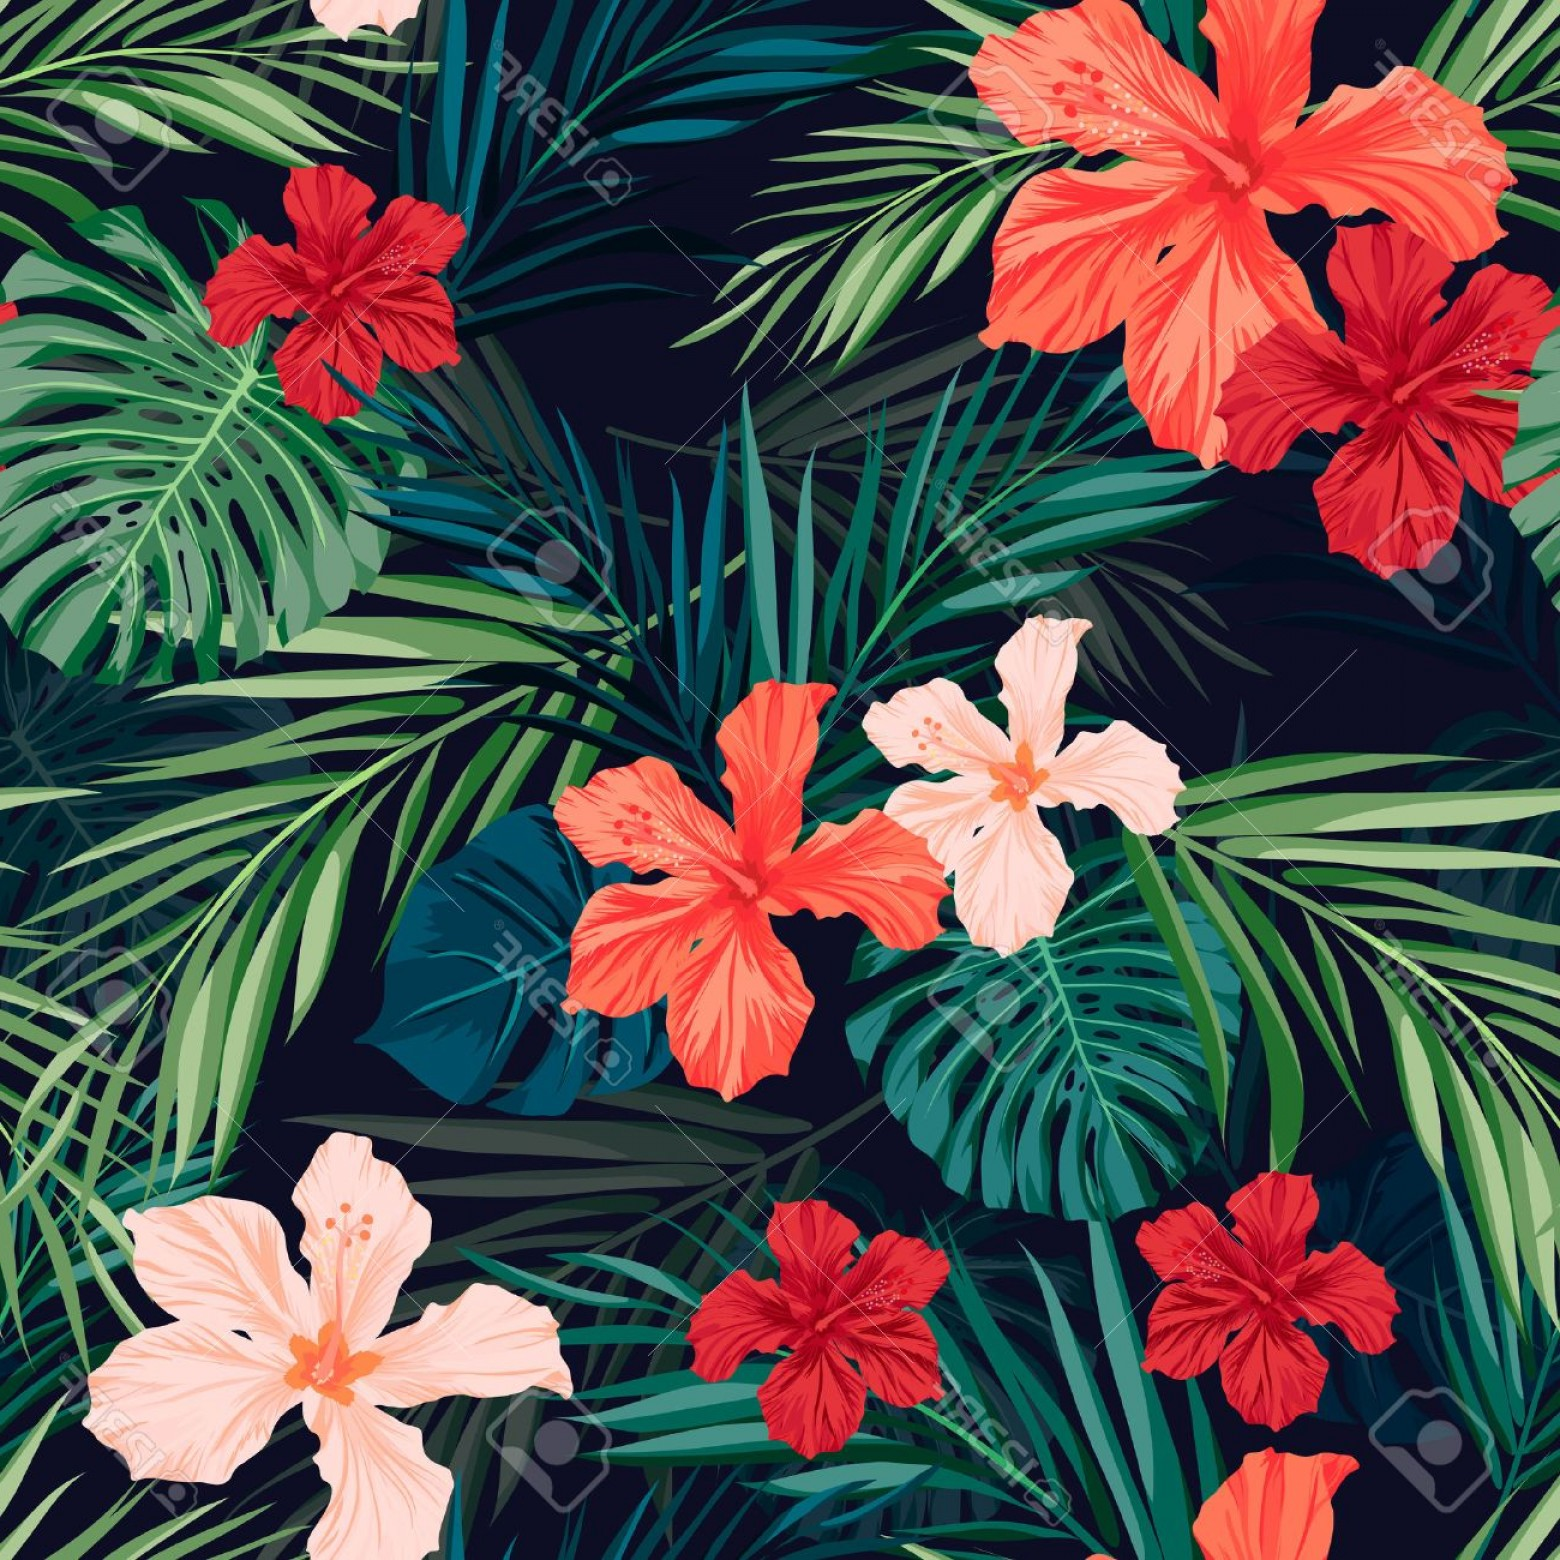 Hawaiian Flower Seamless Vector Pattern: Fanciful Photostock Vector Summer Colorful Hawaiian Seamless Pattern With Tropical Plants And Hibiscus Flowers Vector Illustrat